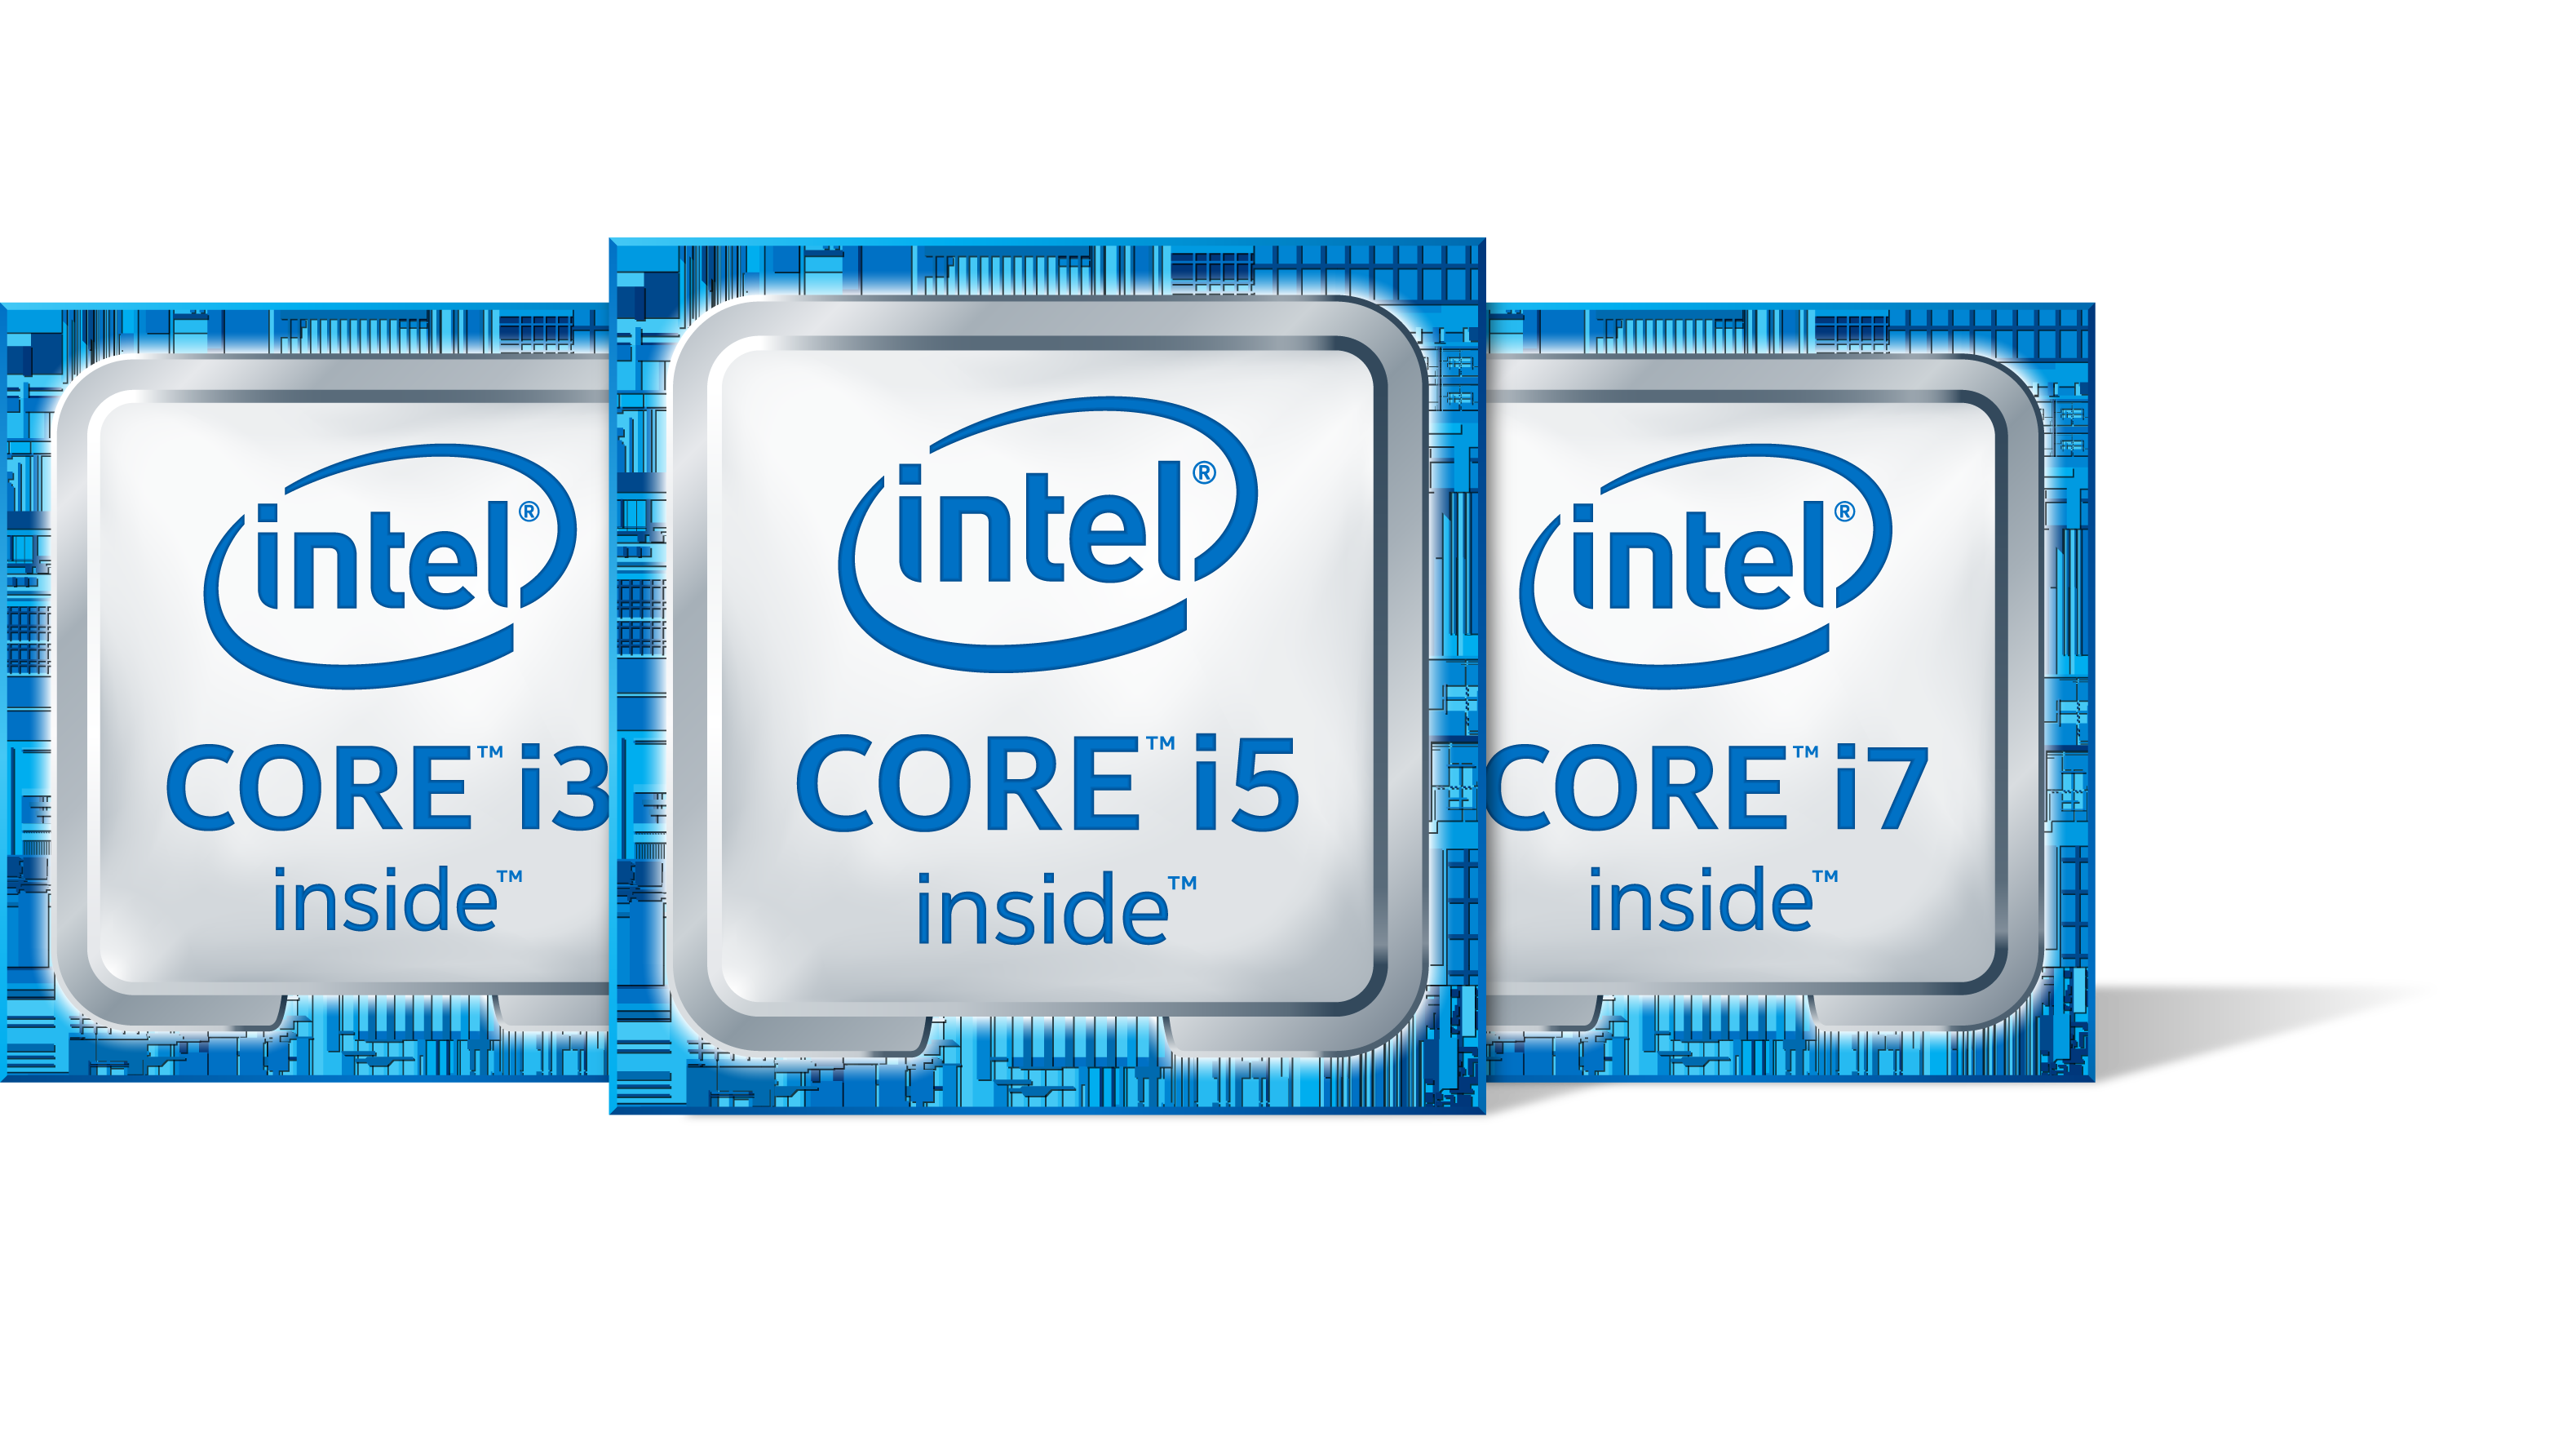 6th Generation Intel® Core™ Processor badge